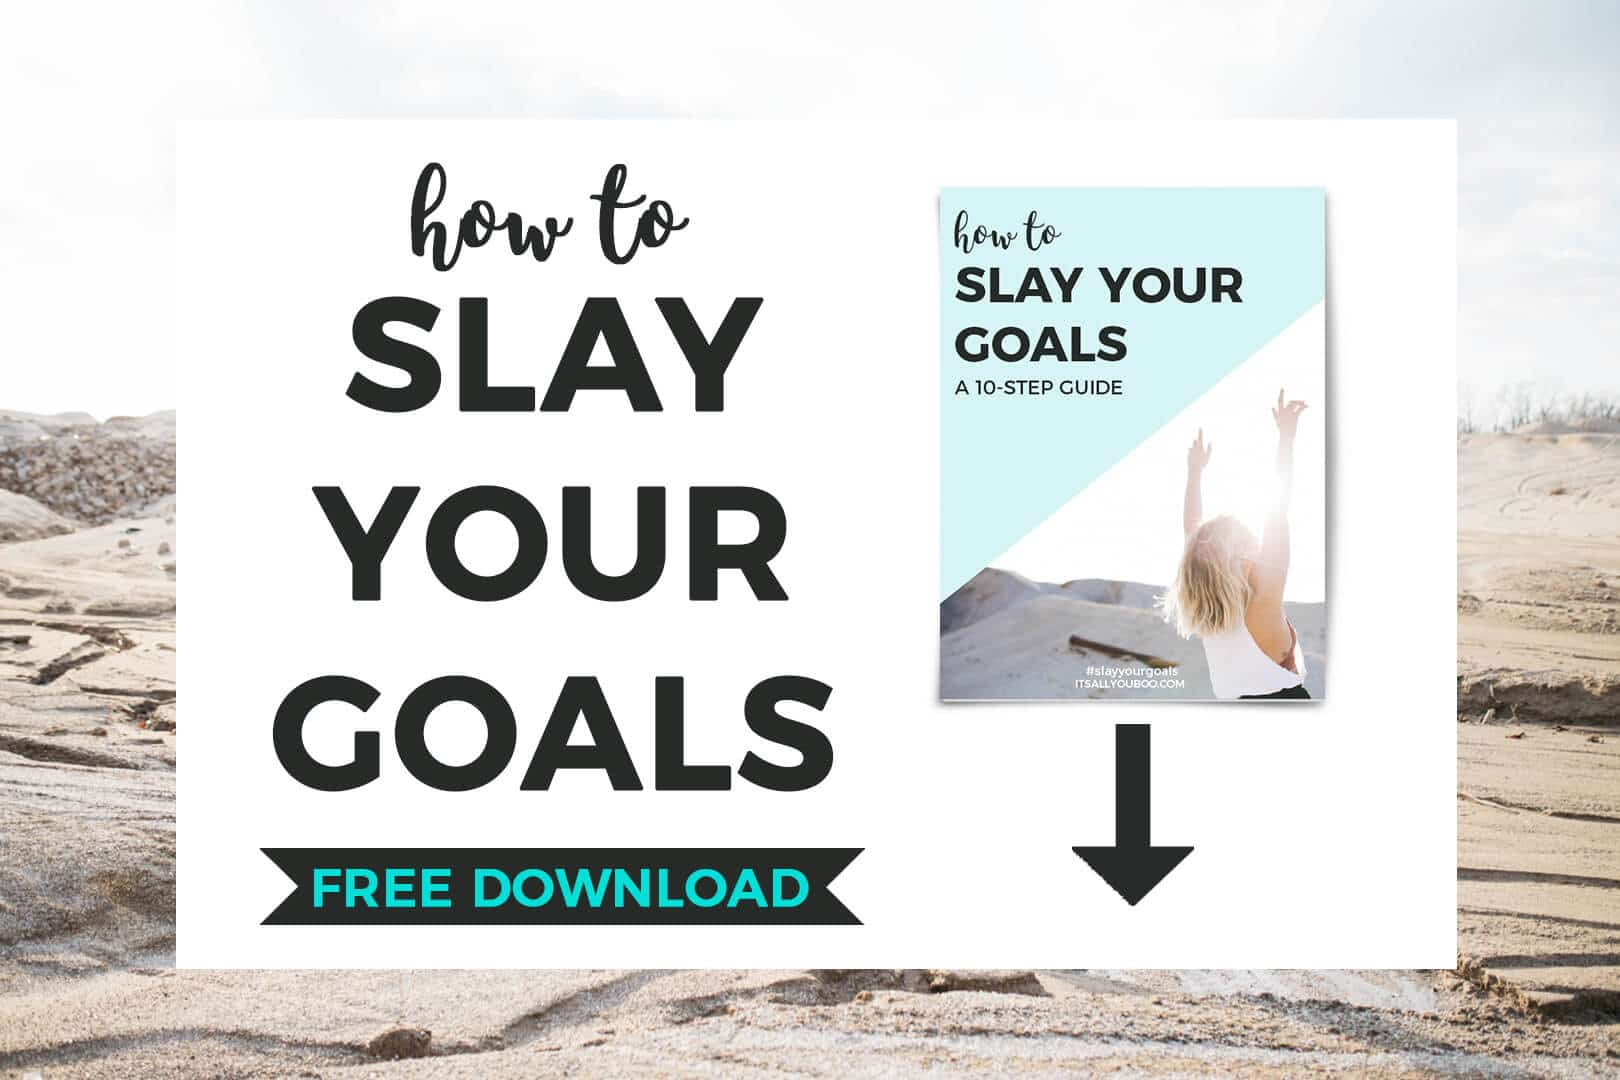 How to Slay Your Goals FREE DOWNLOAD + preview image of free guide